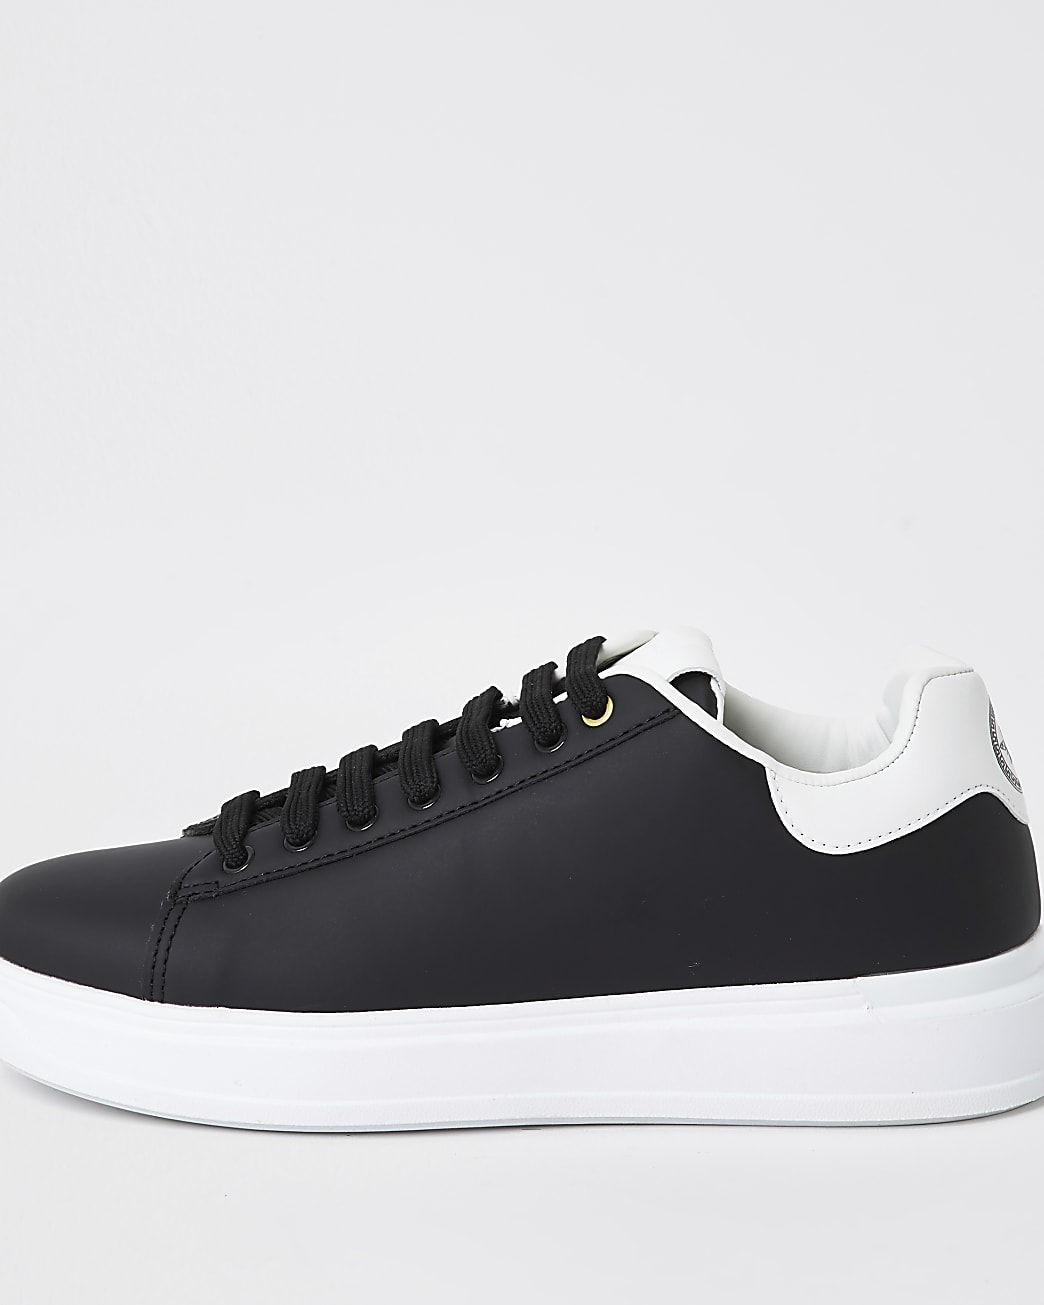 Black lace-up wedge sole trainers